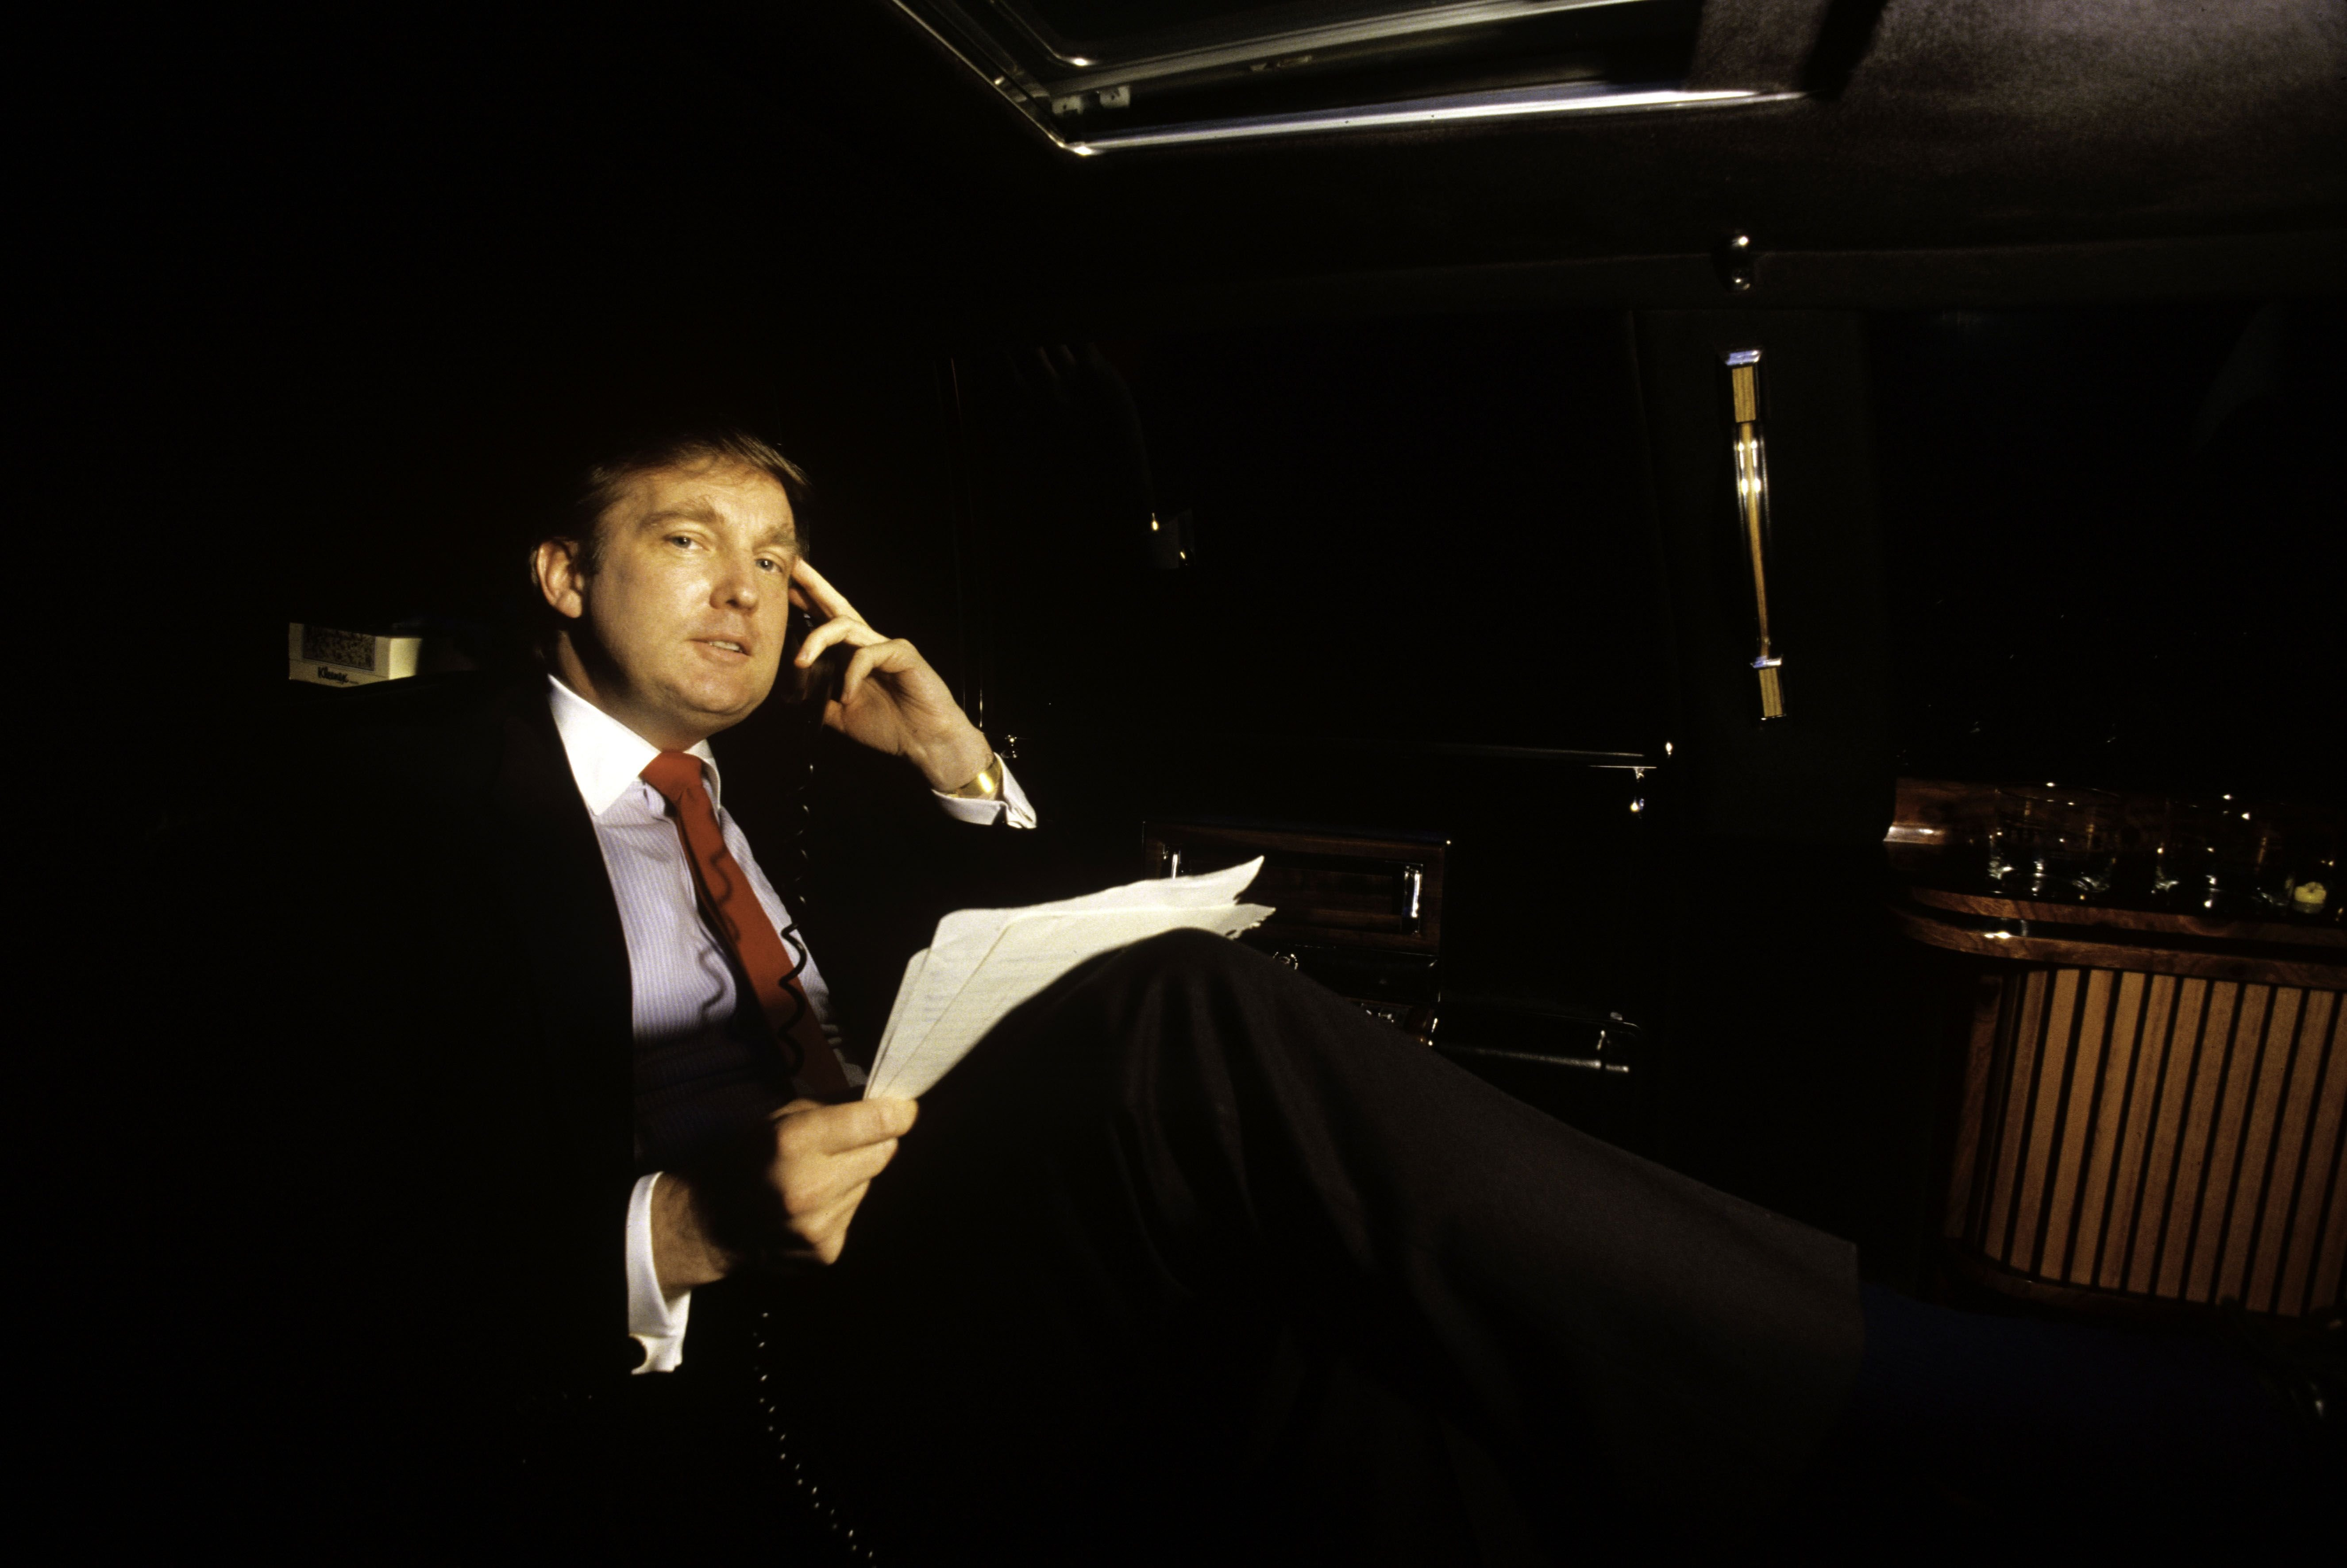 Donald Trump in his limousine, New York, circa 1985 | Source: Getty Images